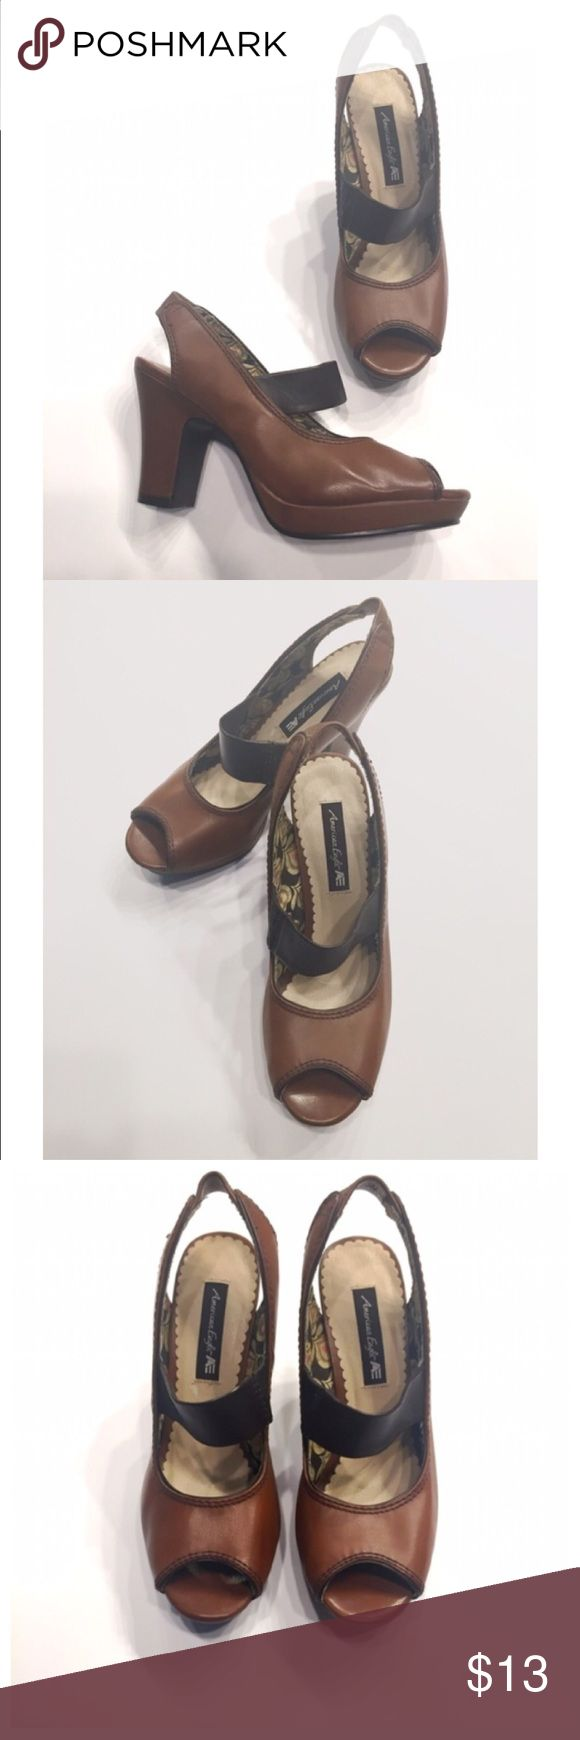 Brown Peep Toe Chunky Heels from American Eagle Brown Peep Toe Chunky Heels from American Eagle...NWT...size 6.5 American Eagle Outfitters Shoes Heels